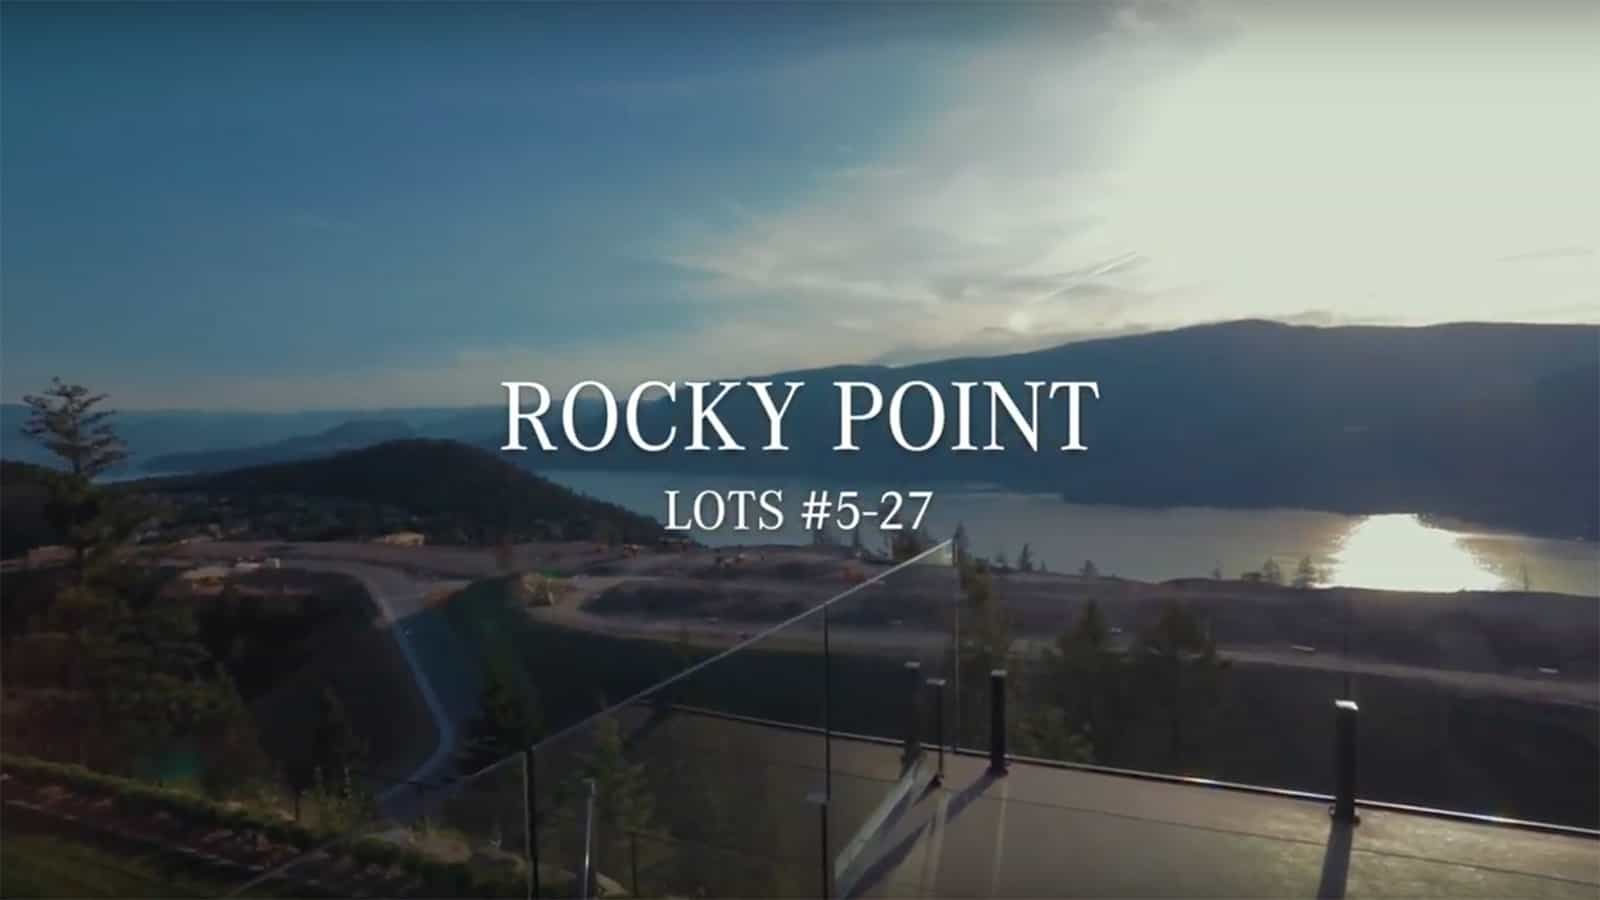 Wilden Kelowna, BC Rocky Point neighbourhood lots